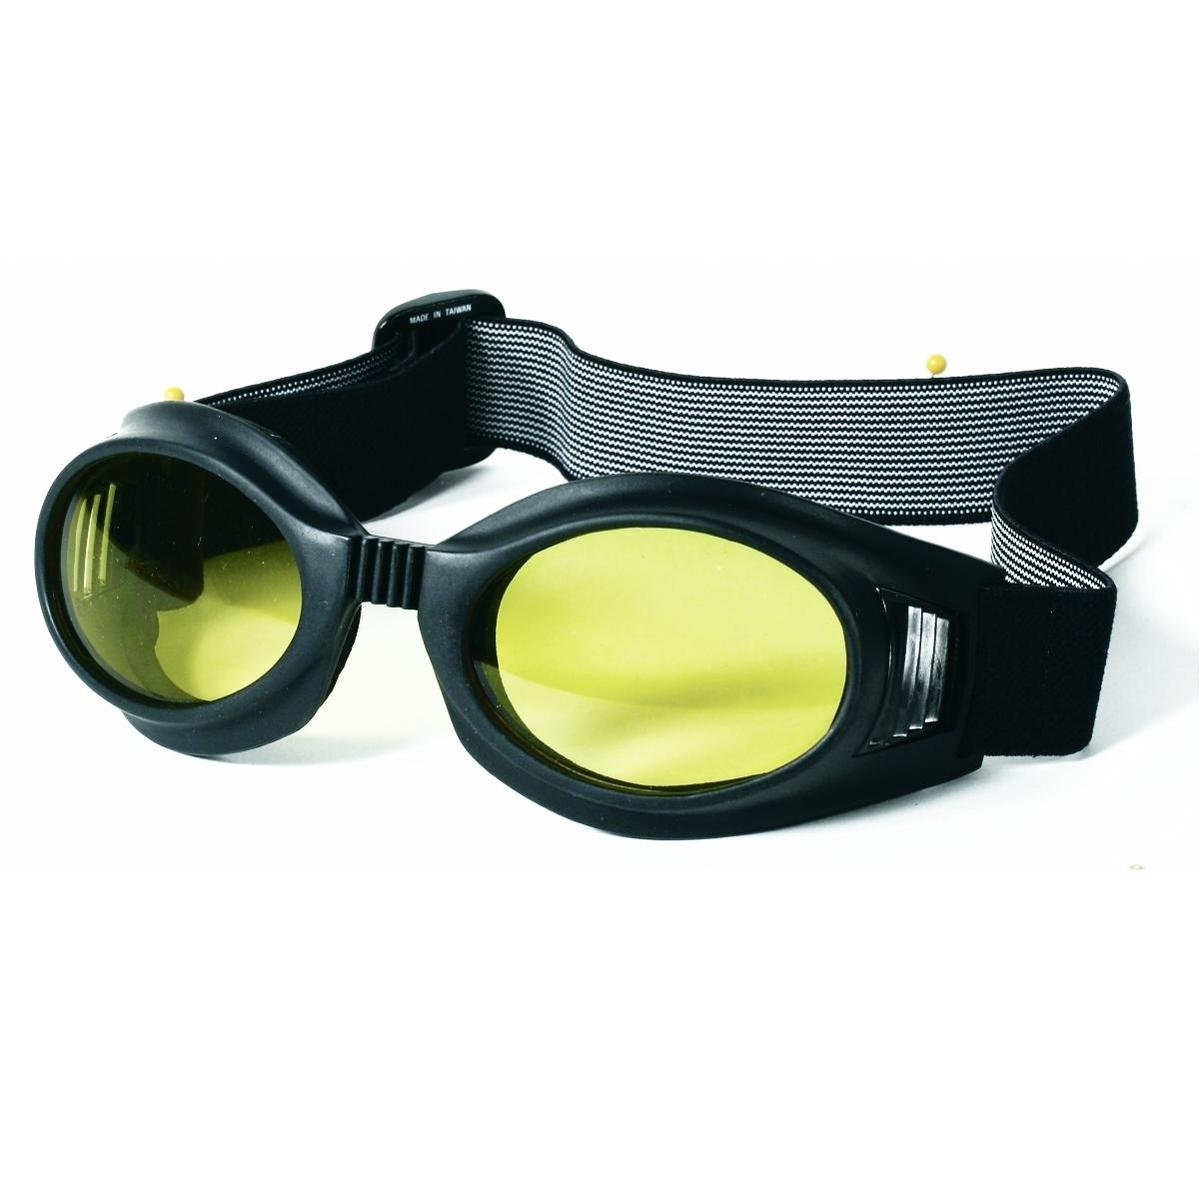 Mil-Spec Adventure Gear Plus MSA02-8828017000 Flex Frame Goggle with Yellow Lens, Black by Mil-Spec Adventure Gear Plus